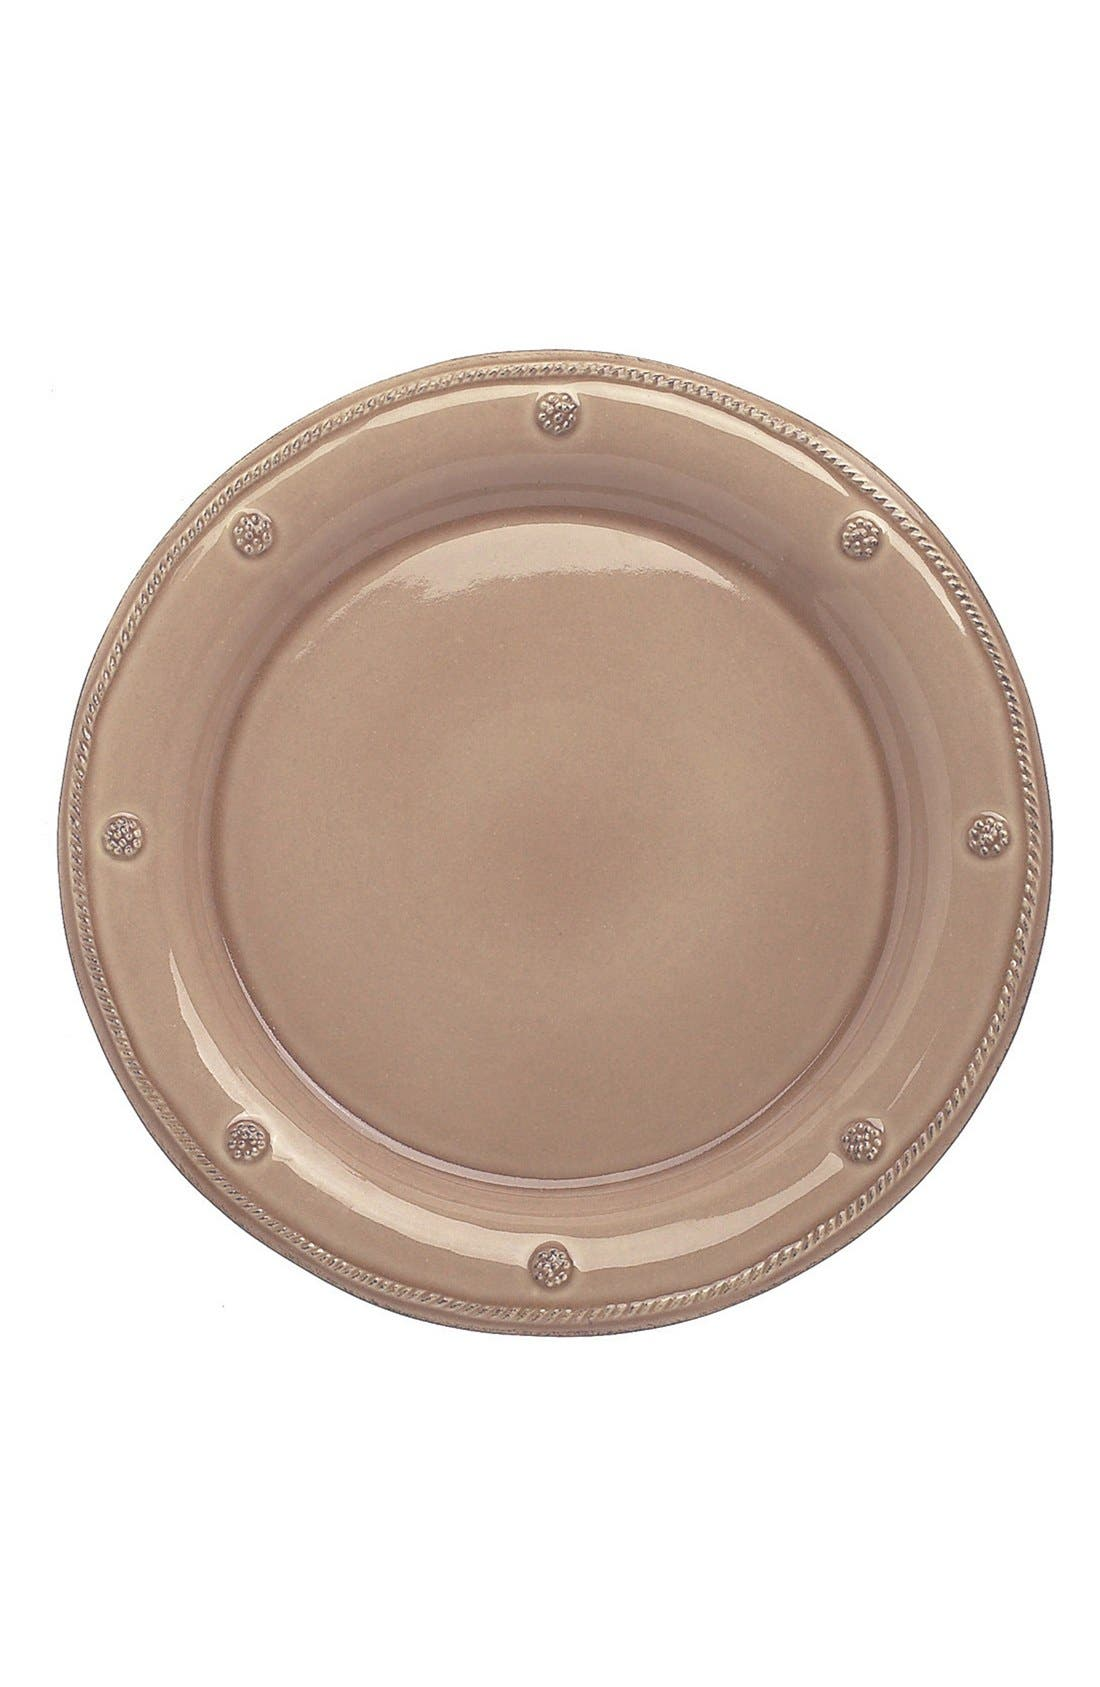 'Berry and Thread' Dinner Plate,                             Main thumbnail 1, color,                             Cappuccino Brown